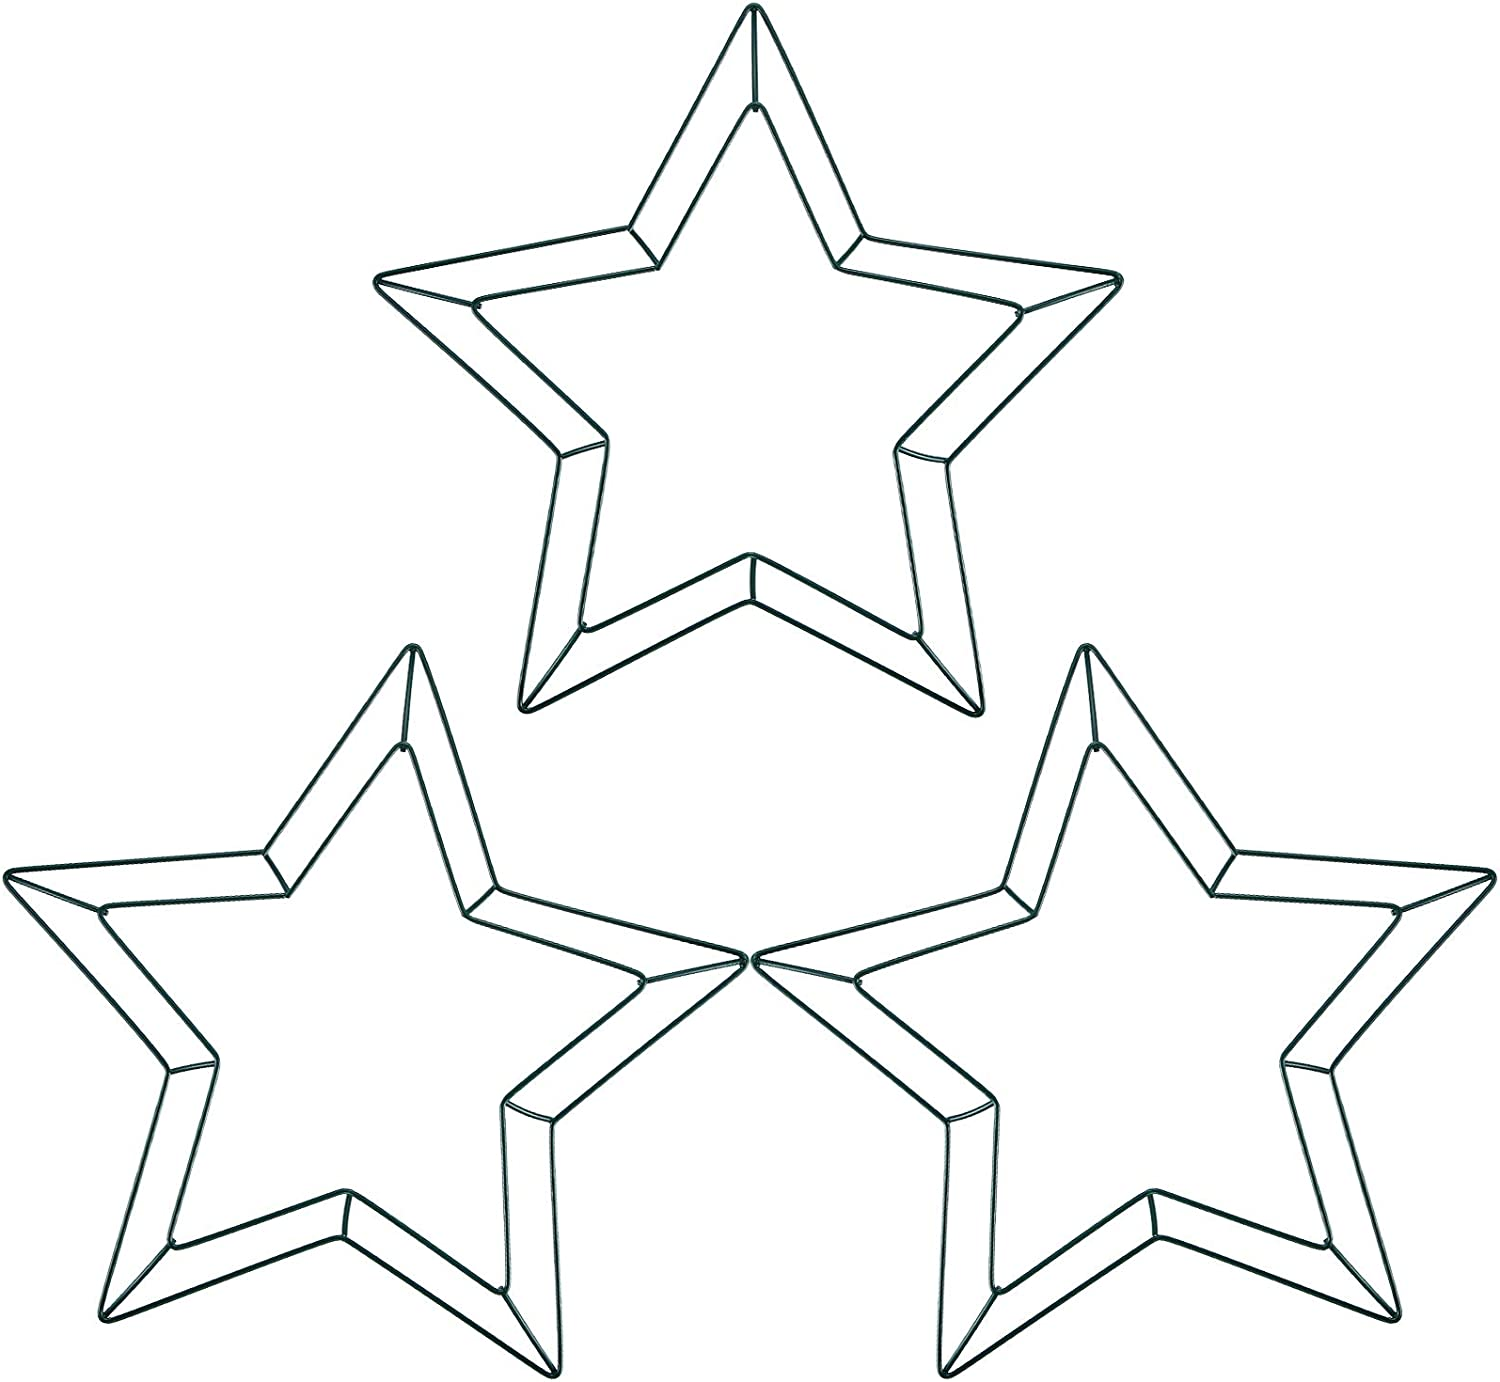 12 Inch Star Wire Wreath Frame Metal Star Wreath Frames for Independence Day Valentines St. Patrick's Day Holiday Decorations Floral Arrangements Craft DIY